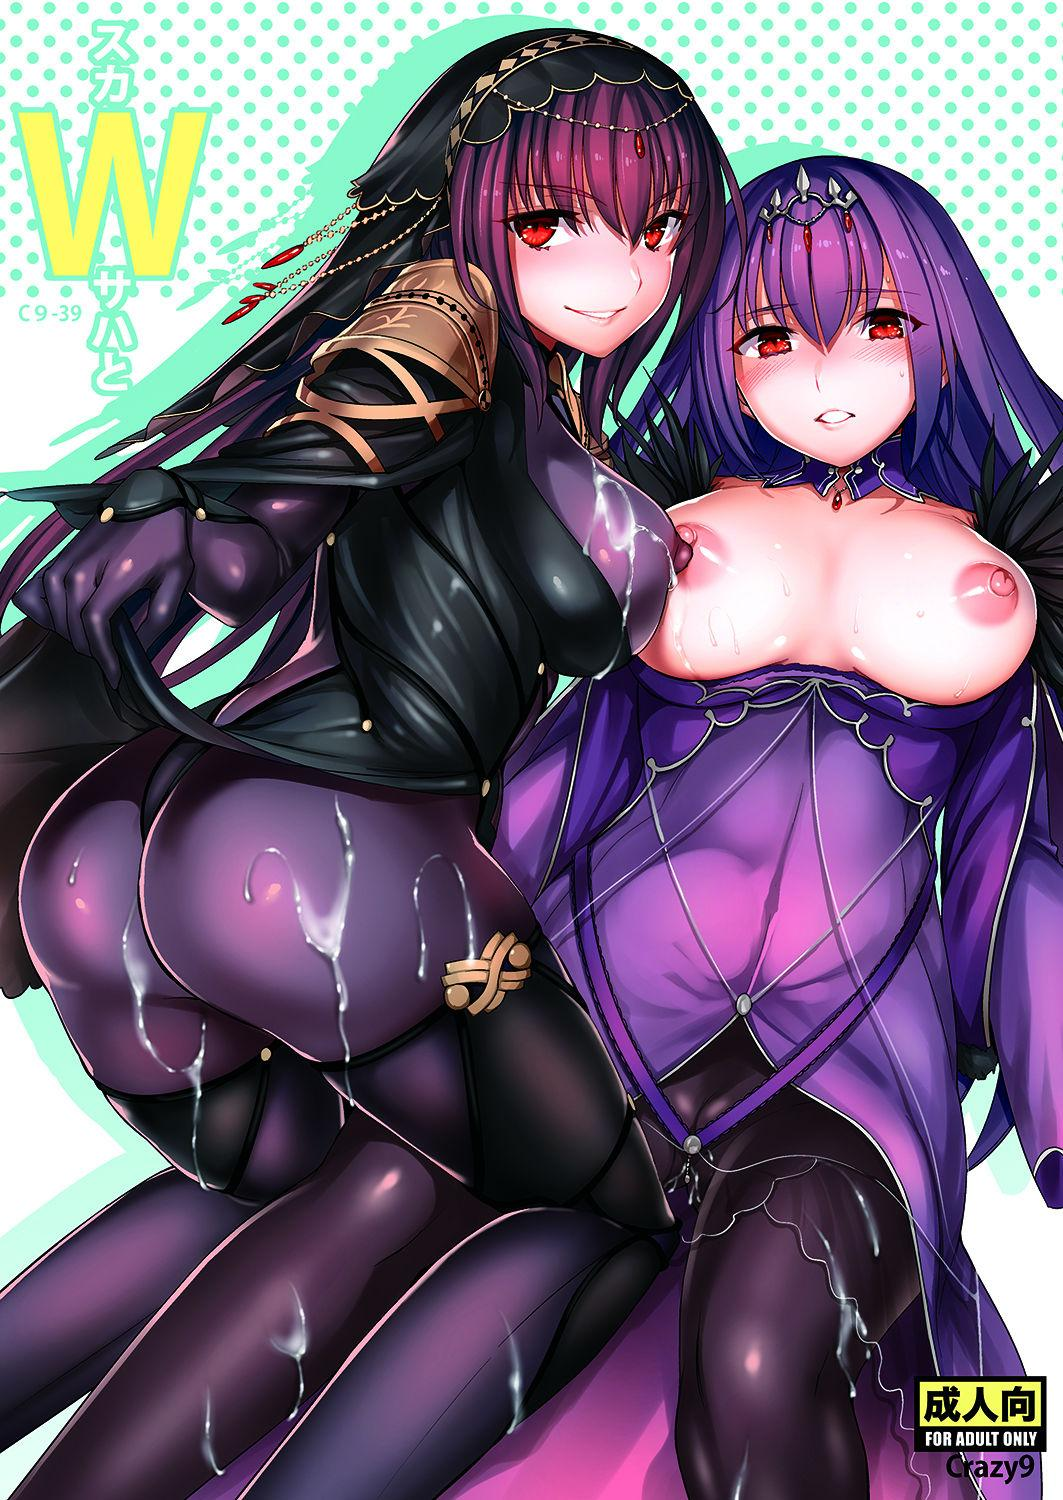 C9-39 W Scathach to 0